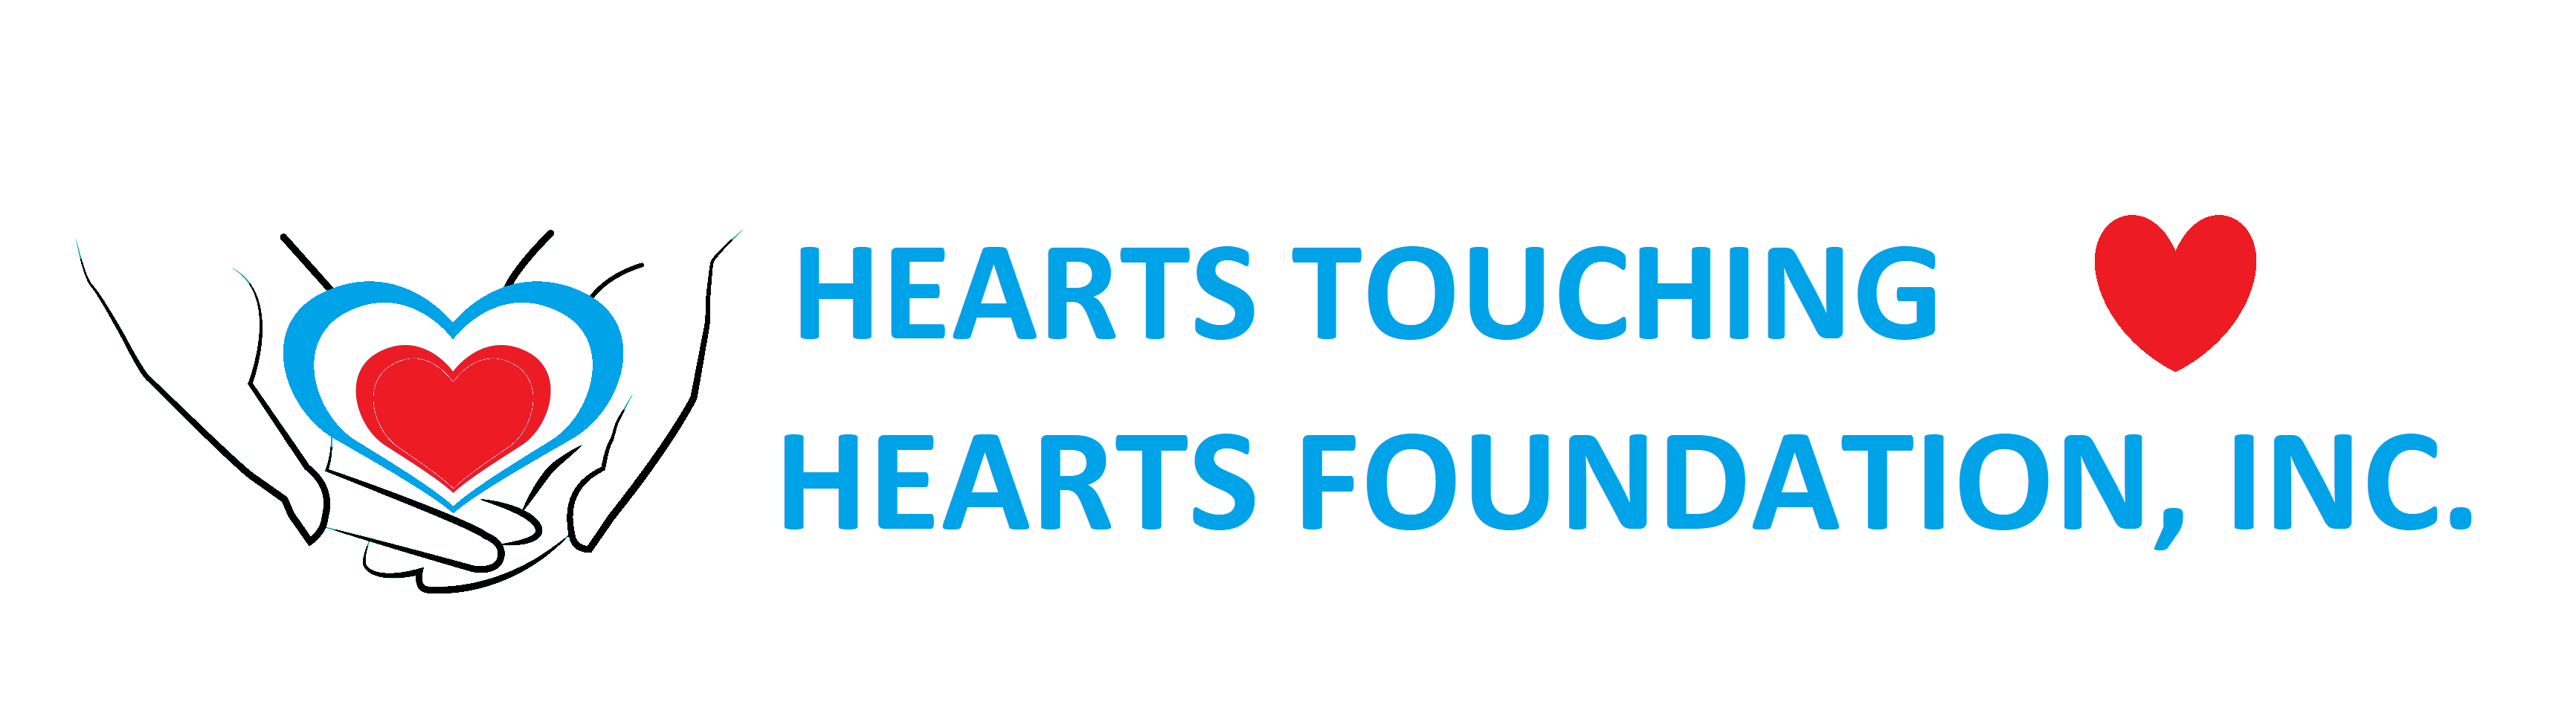 Hearts Touching Hearts Foundation